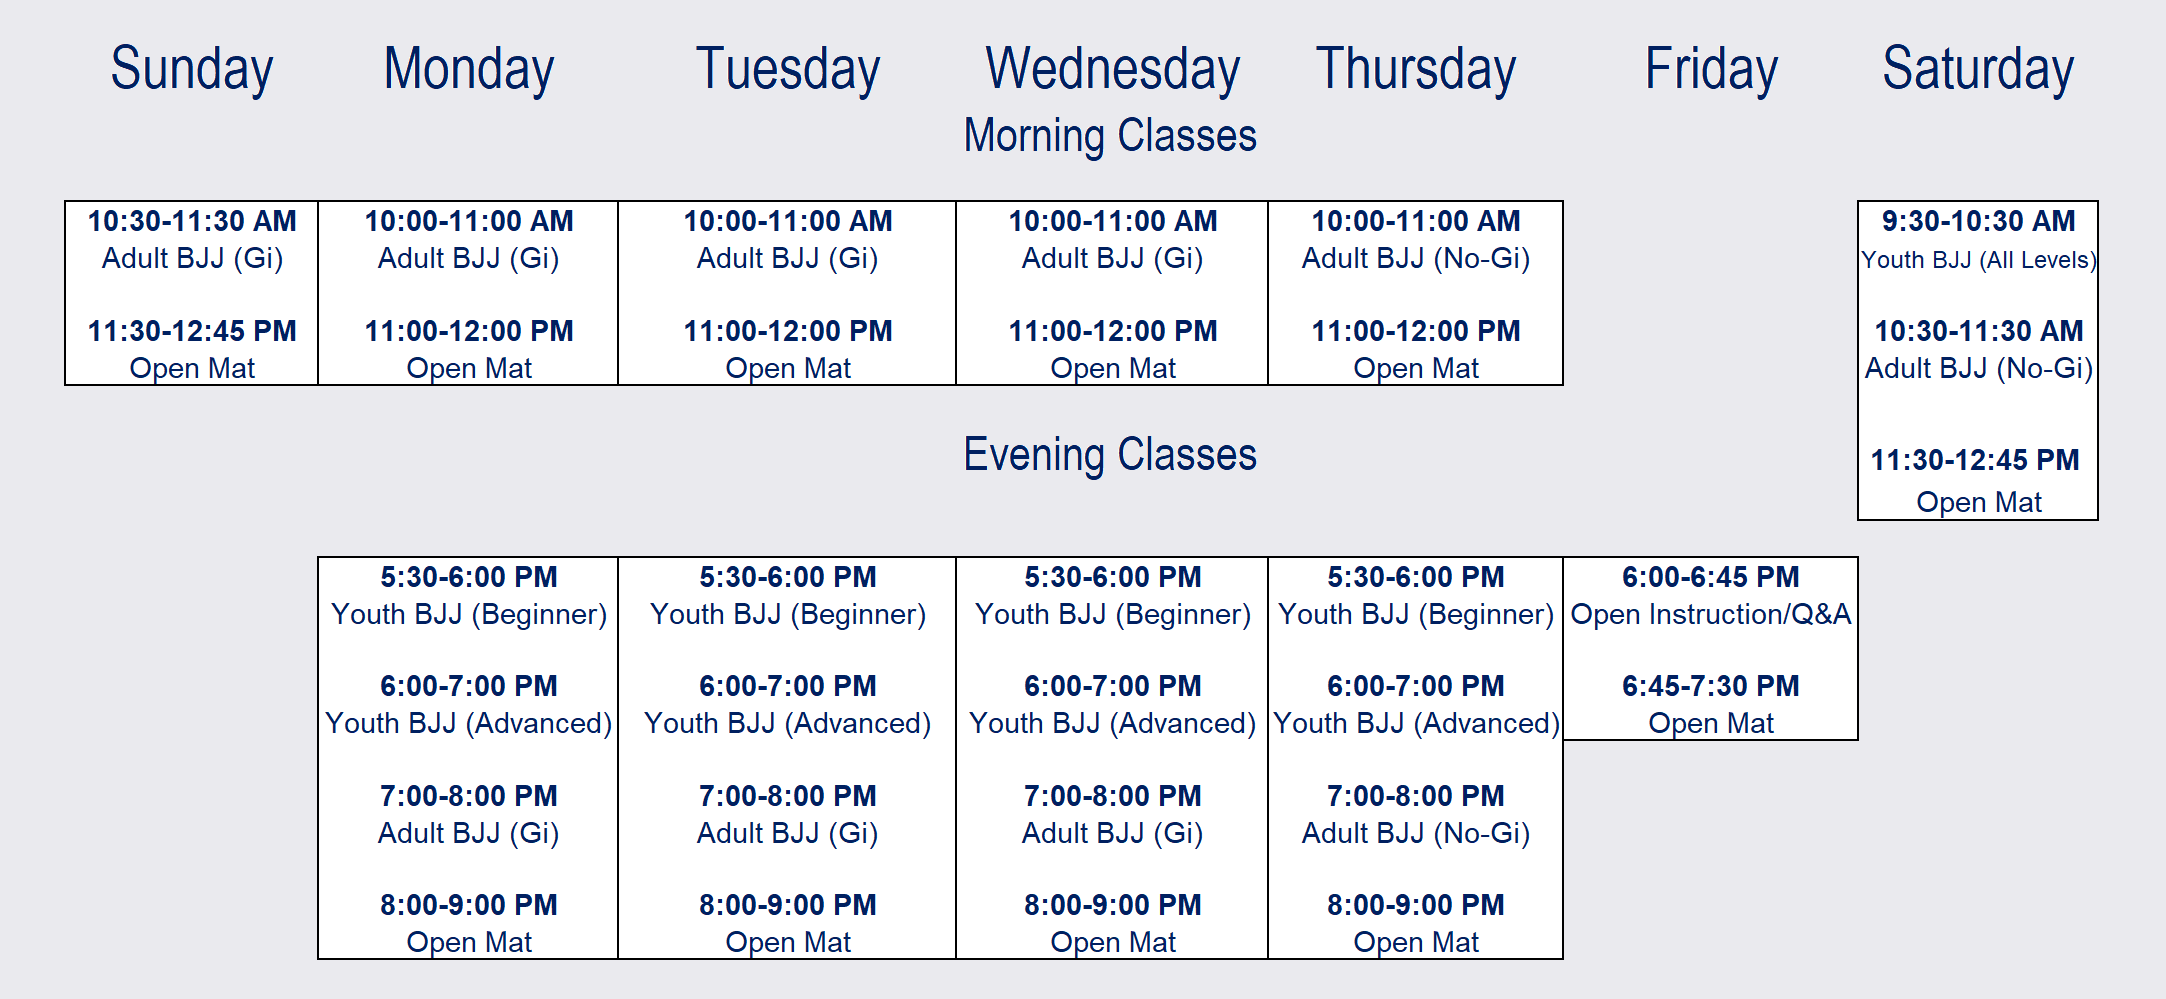 With classes offered all seven days of the week, we know you'll be able to find time to train with us! Take advantage of our early and late sessions, or if your week is too busy, stop in on the weekends! We are excited to have you in for your first day. All classes are beginner friendly and designed for everyone, even if it's their first day, to succeed and have fun!